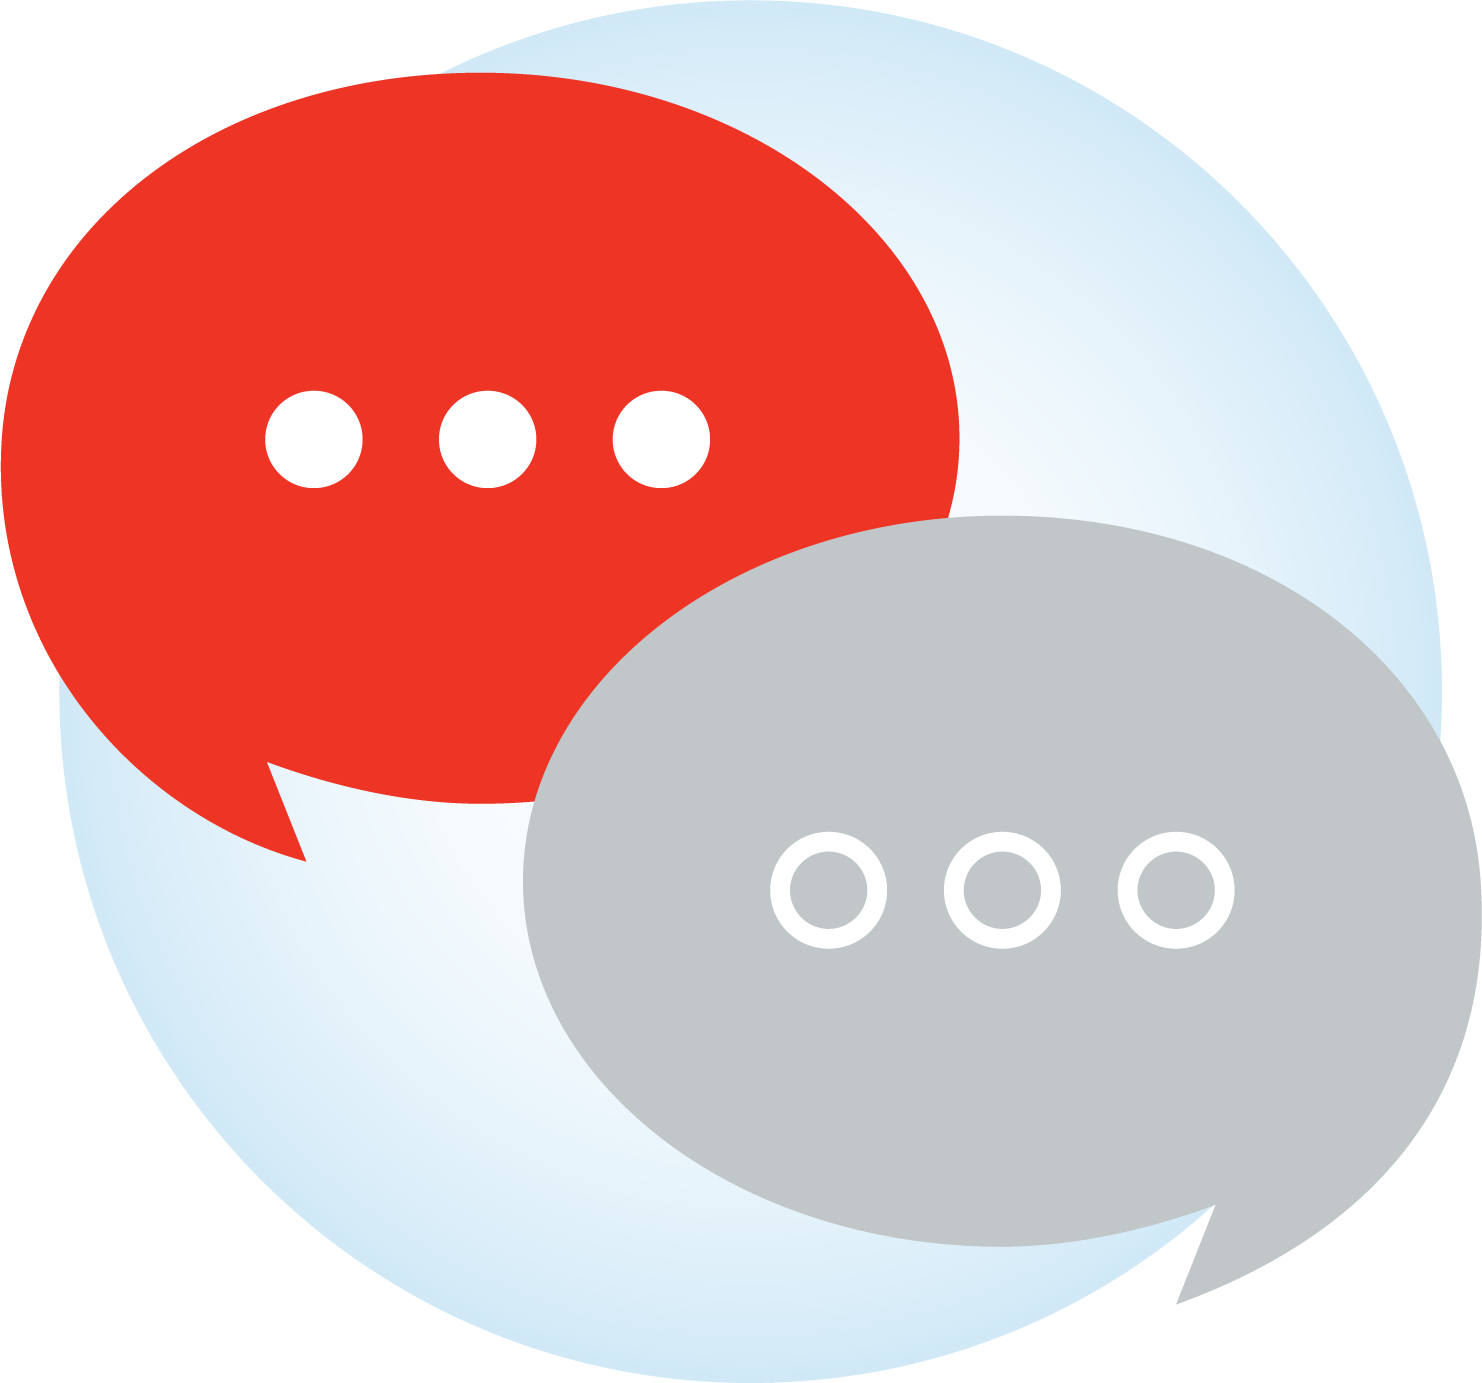 two chat bubbles